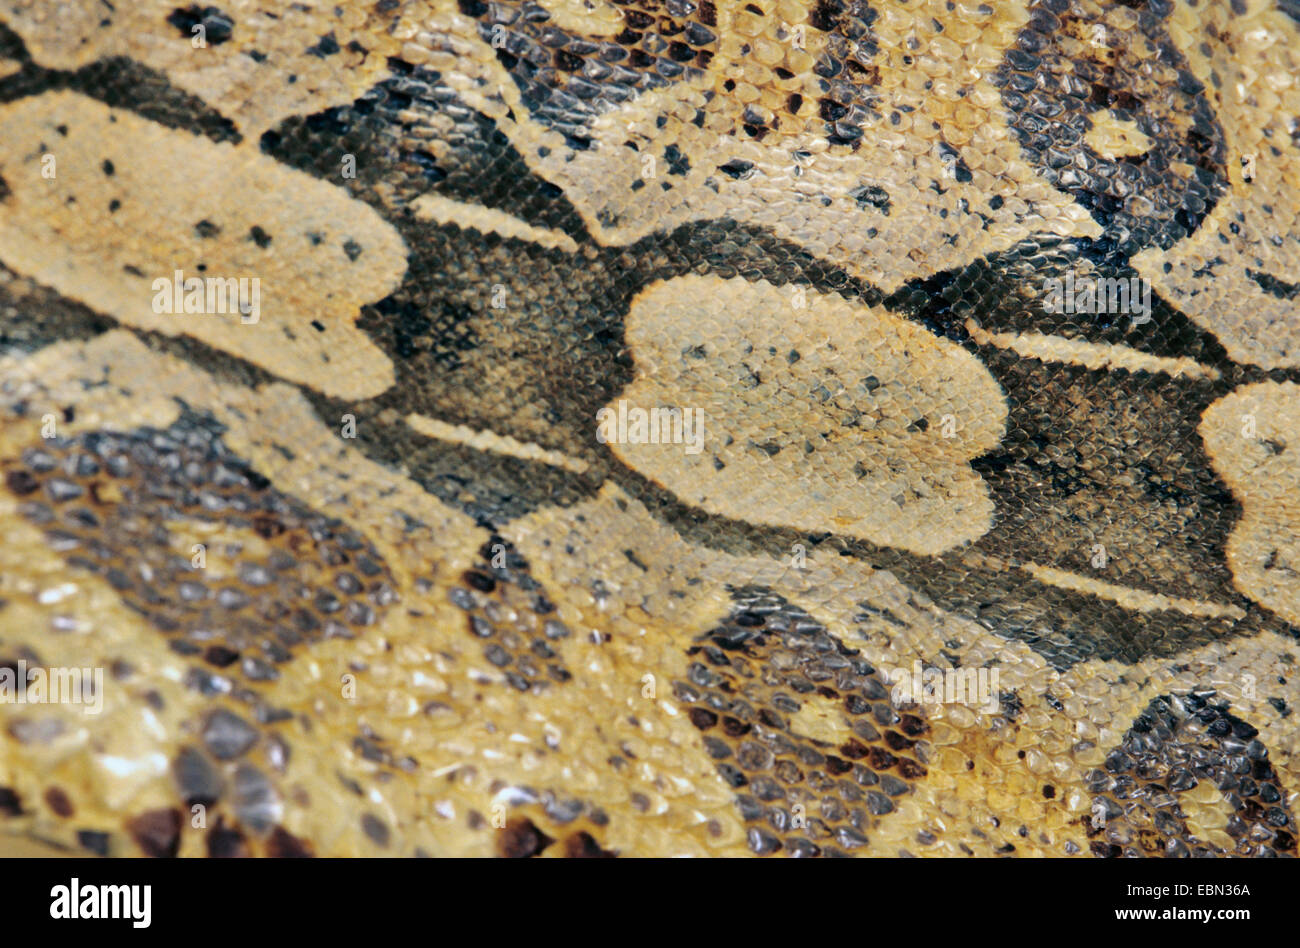 Red-tailed Boa (Boa constrictor), skin - Stock Image